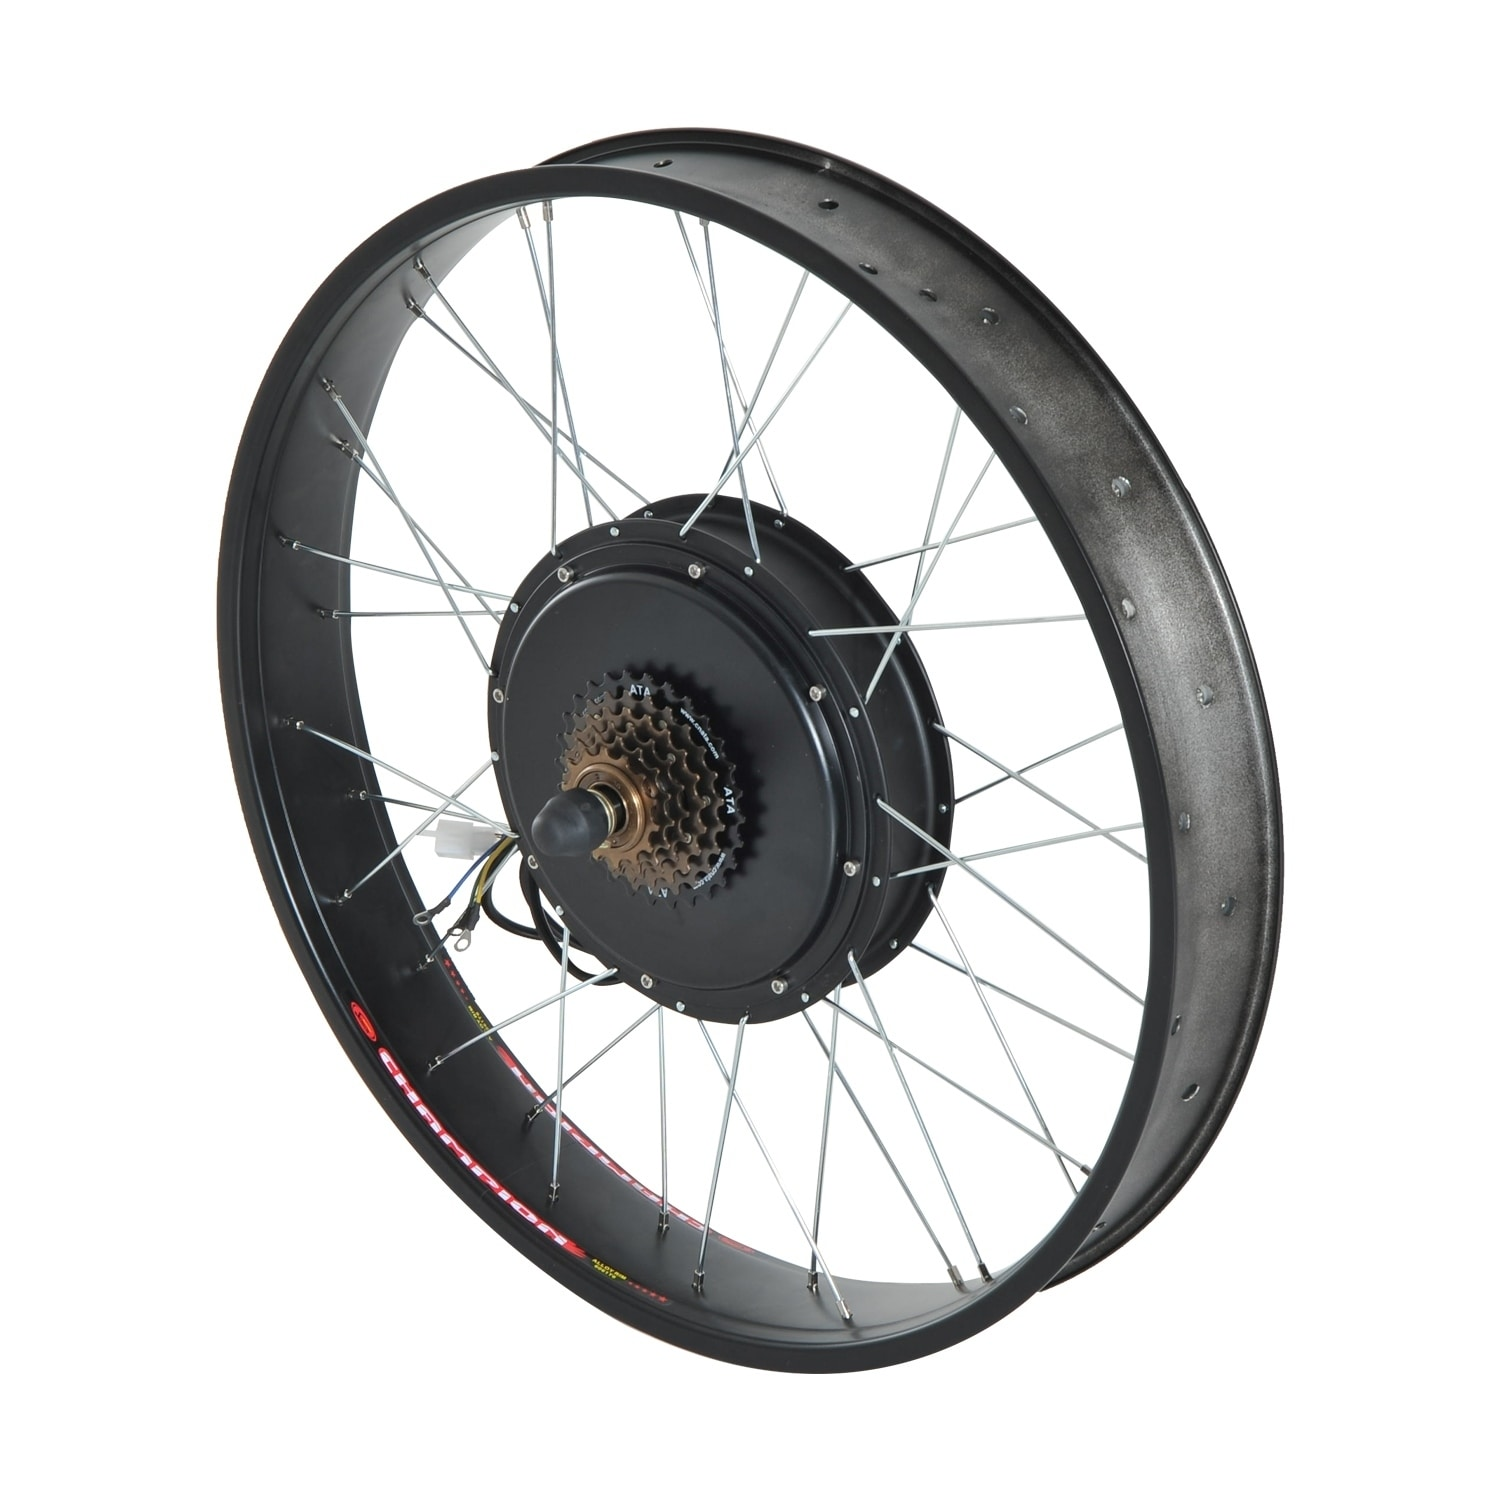 Aosom Rear Wheel 48V 1000W Electric Battery Powered Bicyc...